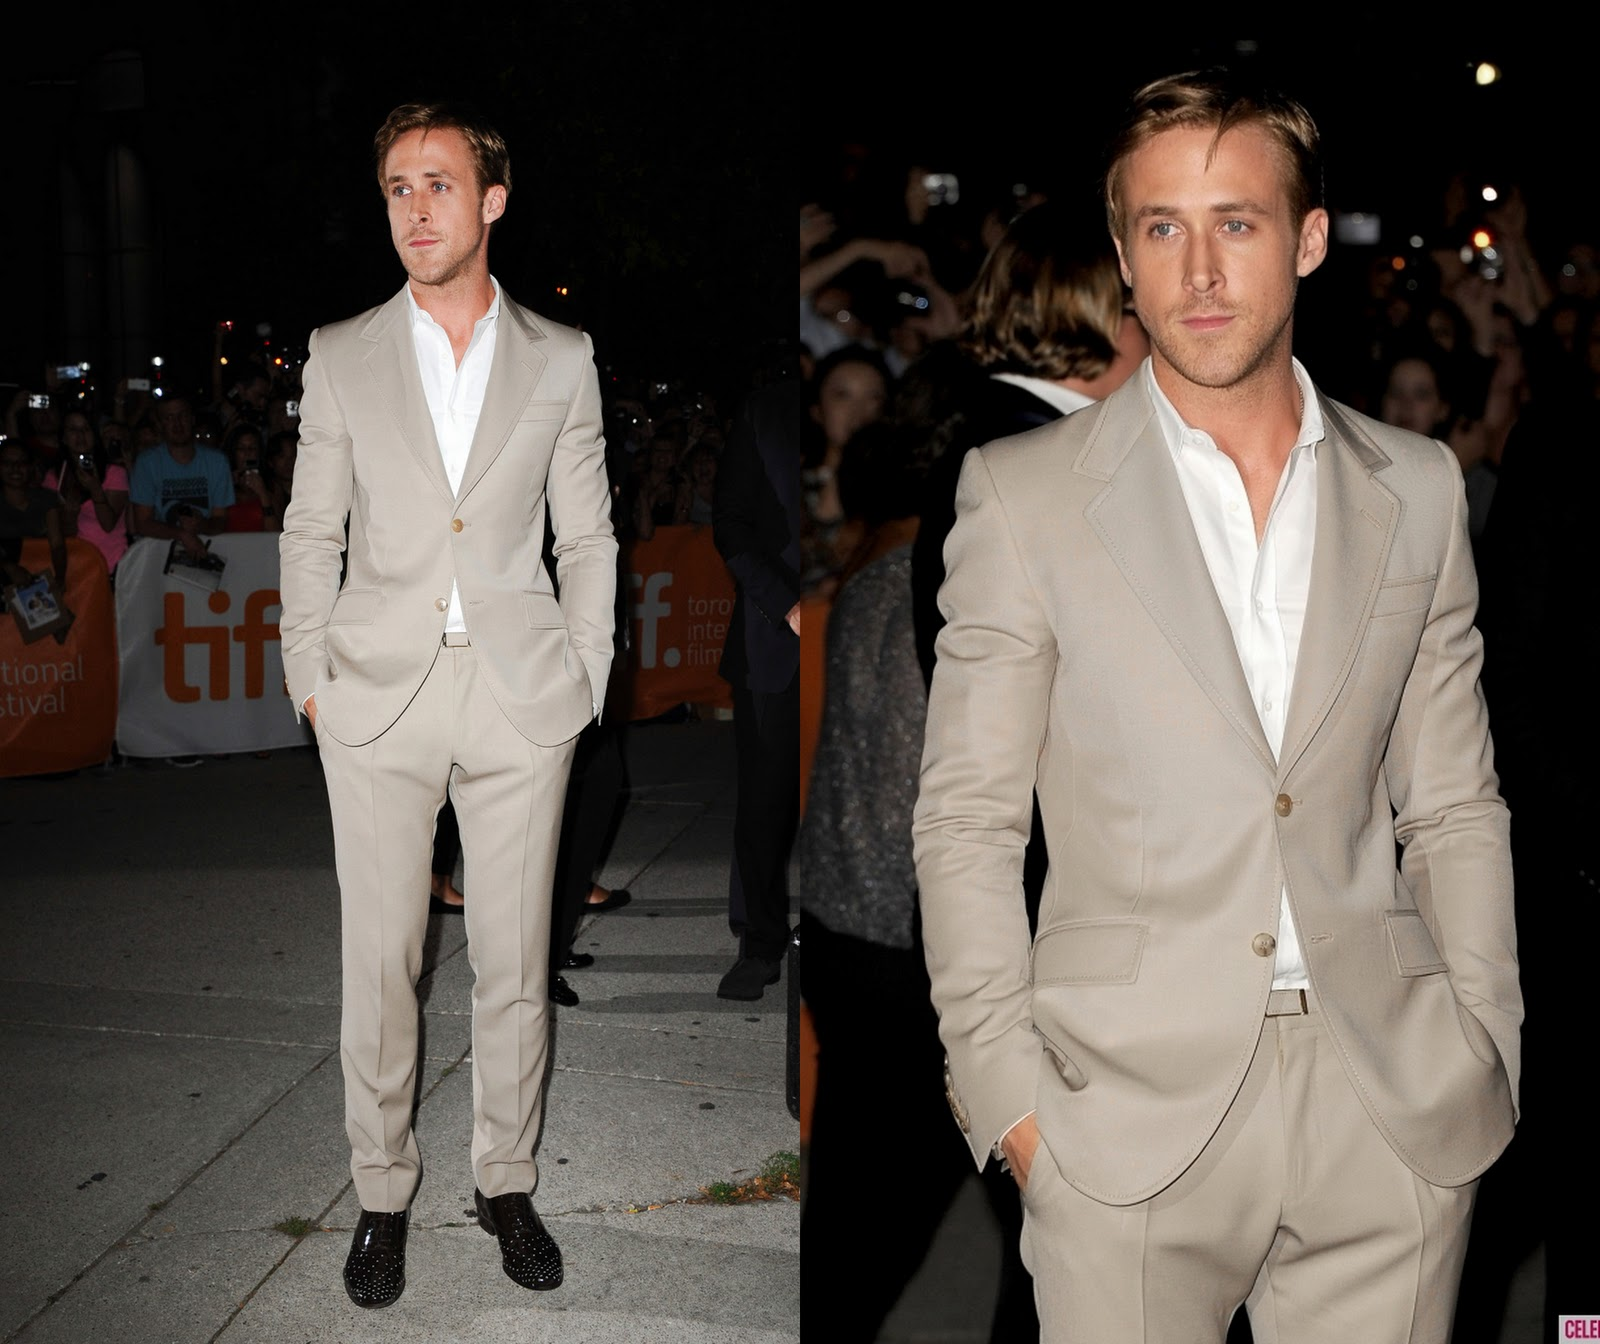 RYAN-GOSLING-AT-CANNES_RYAN-GOSLING-IN-A-SUIT_RYAN-GOSLING-FASHION-STYLE_RYAN-GOSLING-NEW-GIRLFRIEND_RYAN-GOSLING-THE-NOTEBOOK_RYAN-GOSLING-AND-EVA-MENDES_HOLLYWOOD-STYLE-FASHION-ICONS_MENS-FASHION-STYLE-ICONS